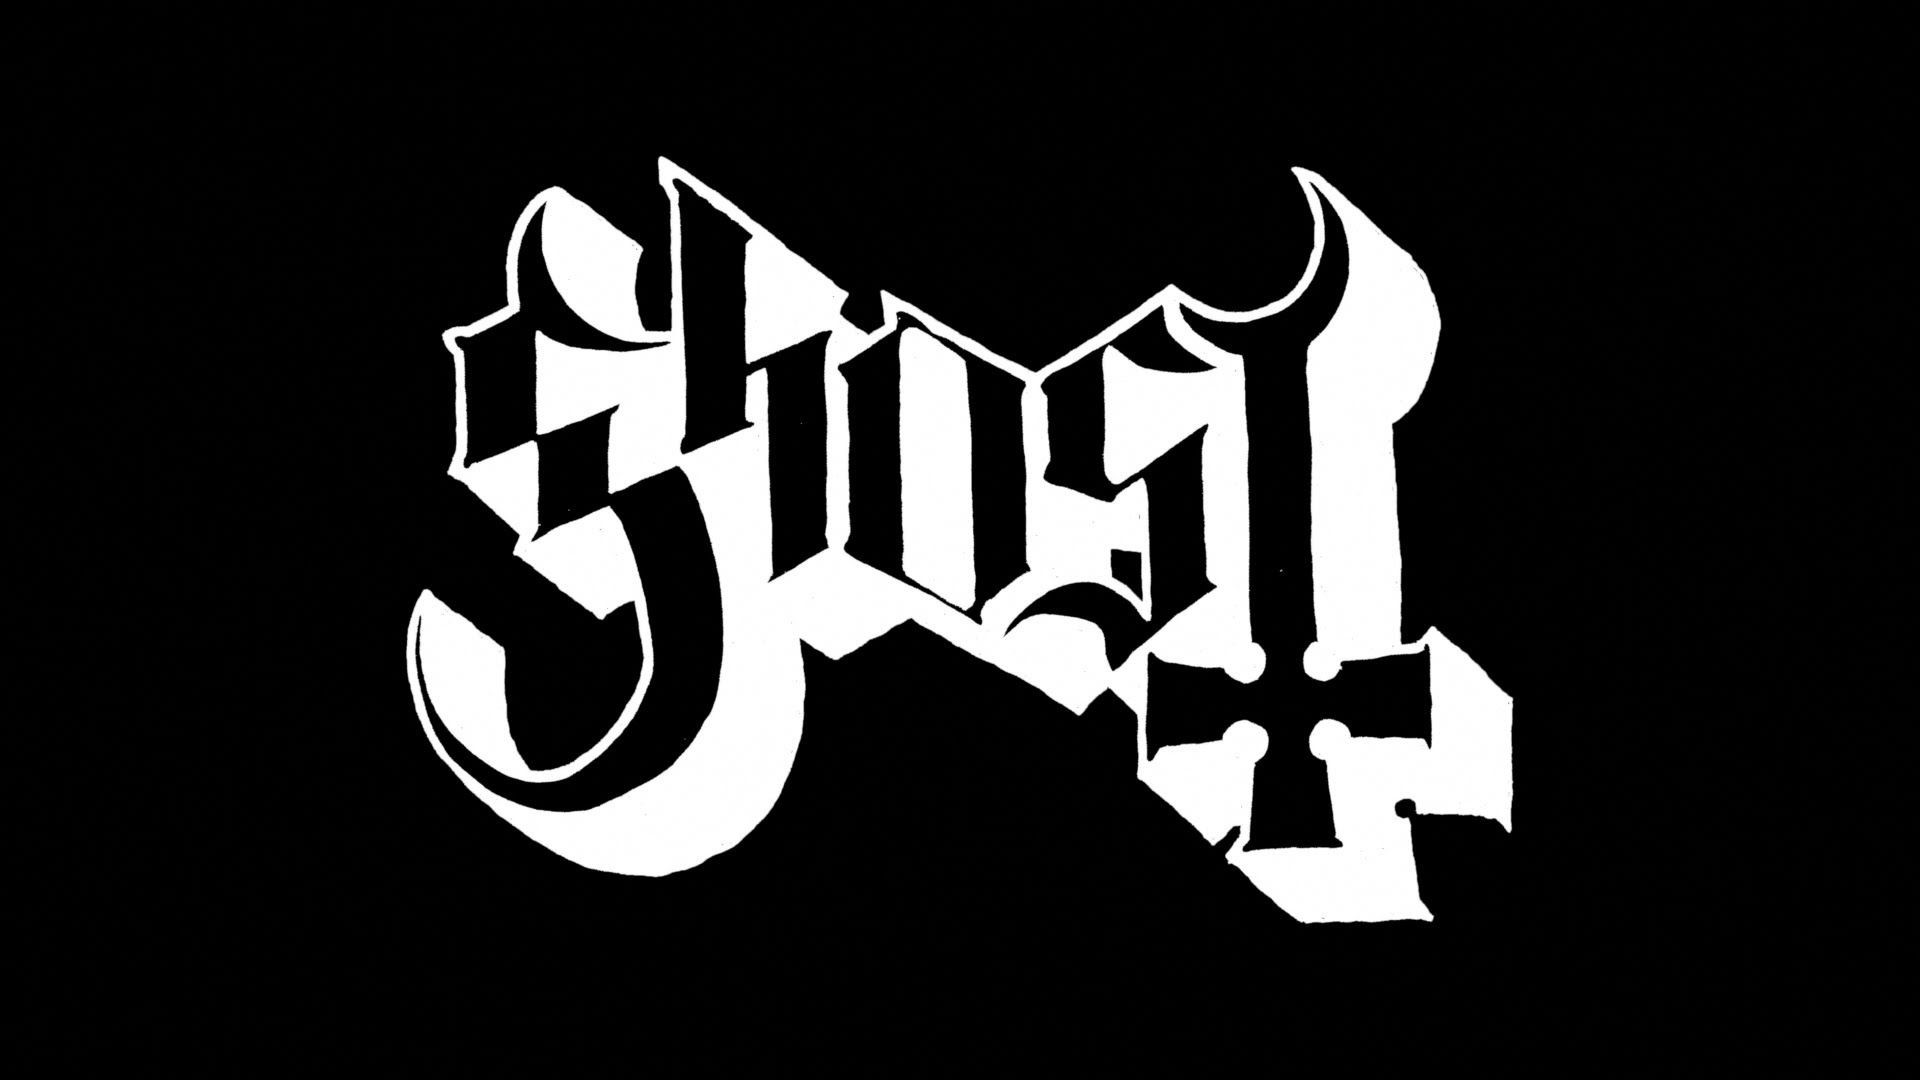 ghost band wallpaper 1